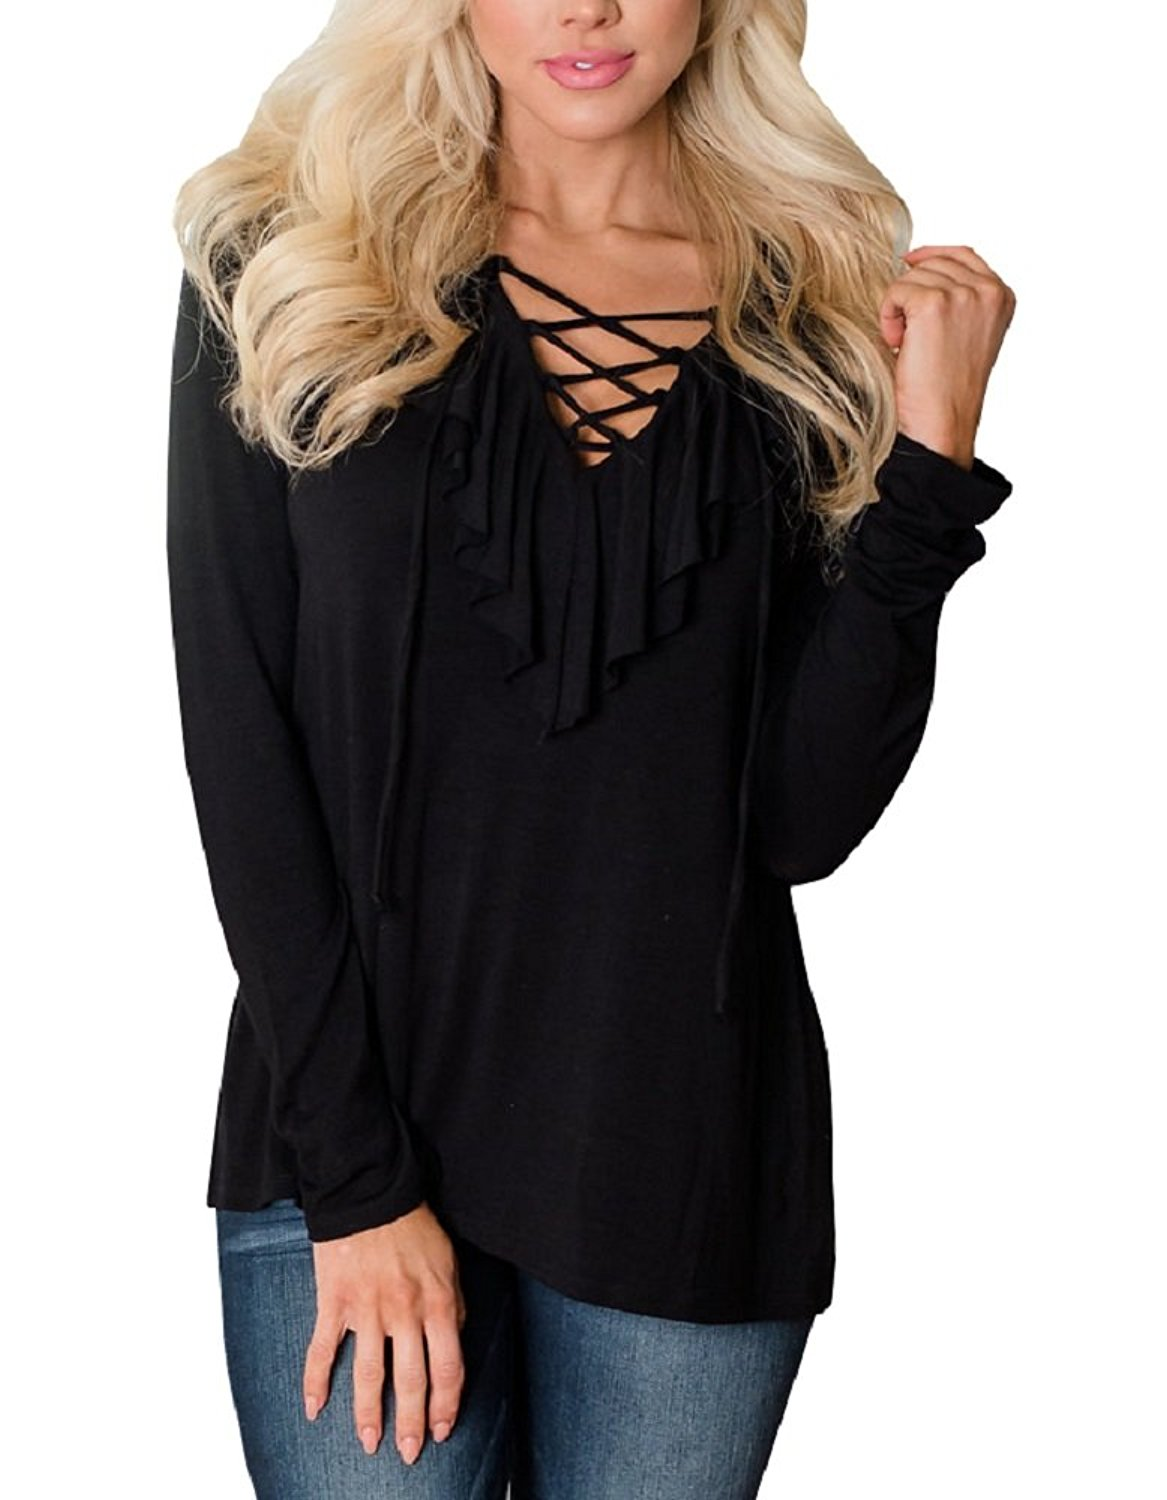 036d1ac082d Get Quotations · Womens V Neck Lace Up Criss Cross Long Sleeve Loose Ruffle Blouse  Shirts Tops Knits